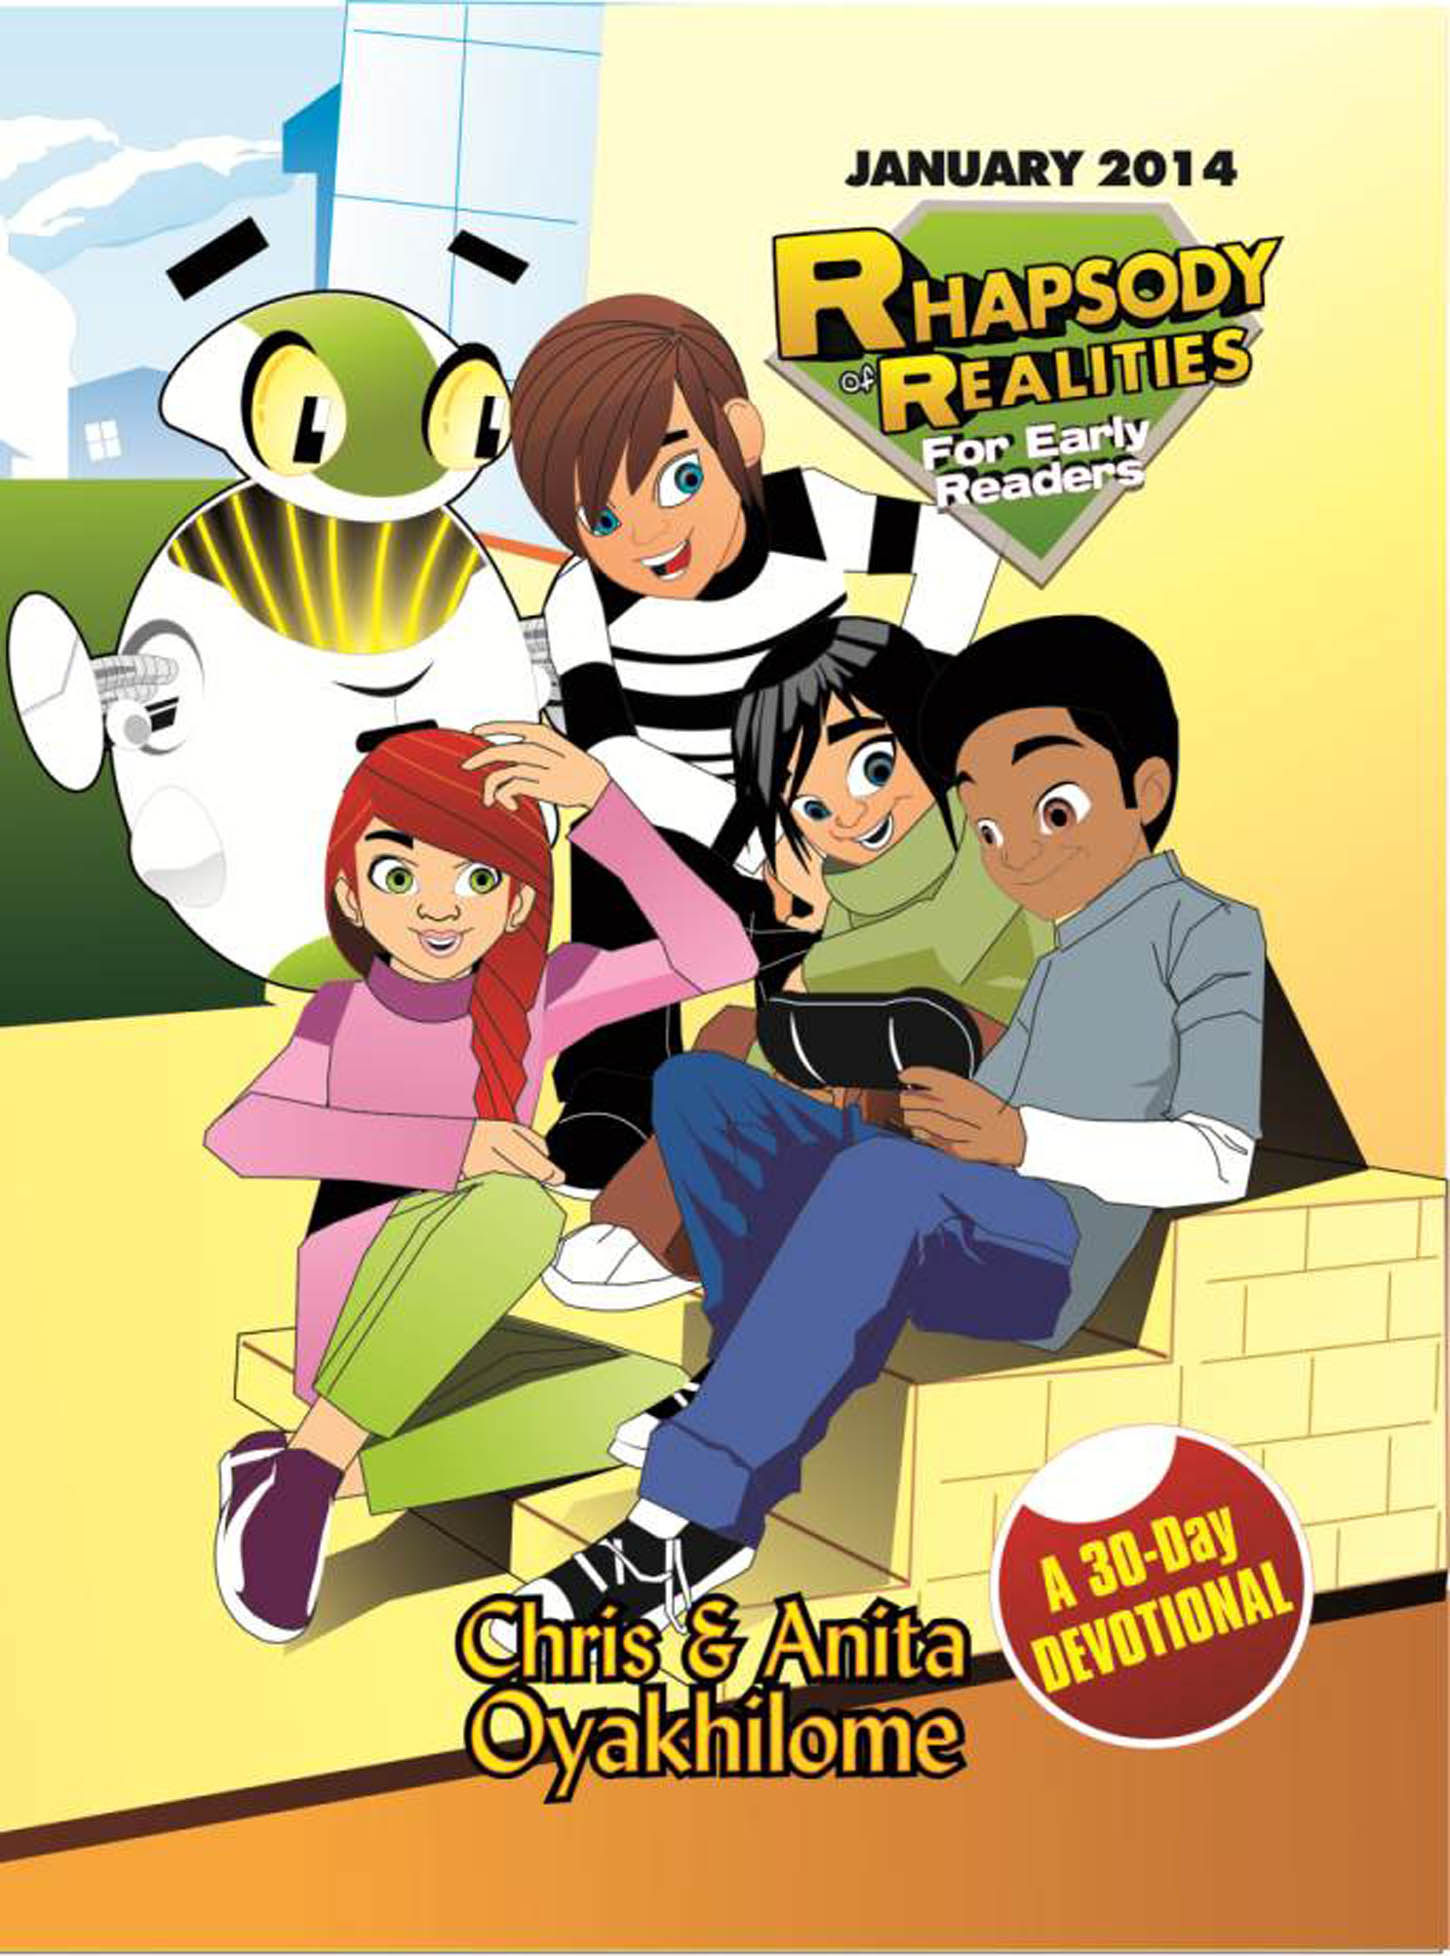 Pastor Chris and Anita Oyakhilome - Rhapsody of Realities for Early Readers – January 2014 Revised Edition